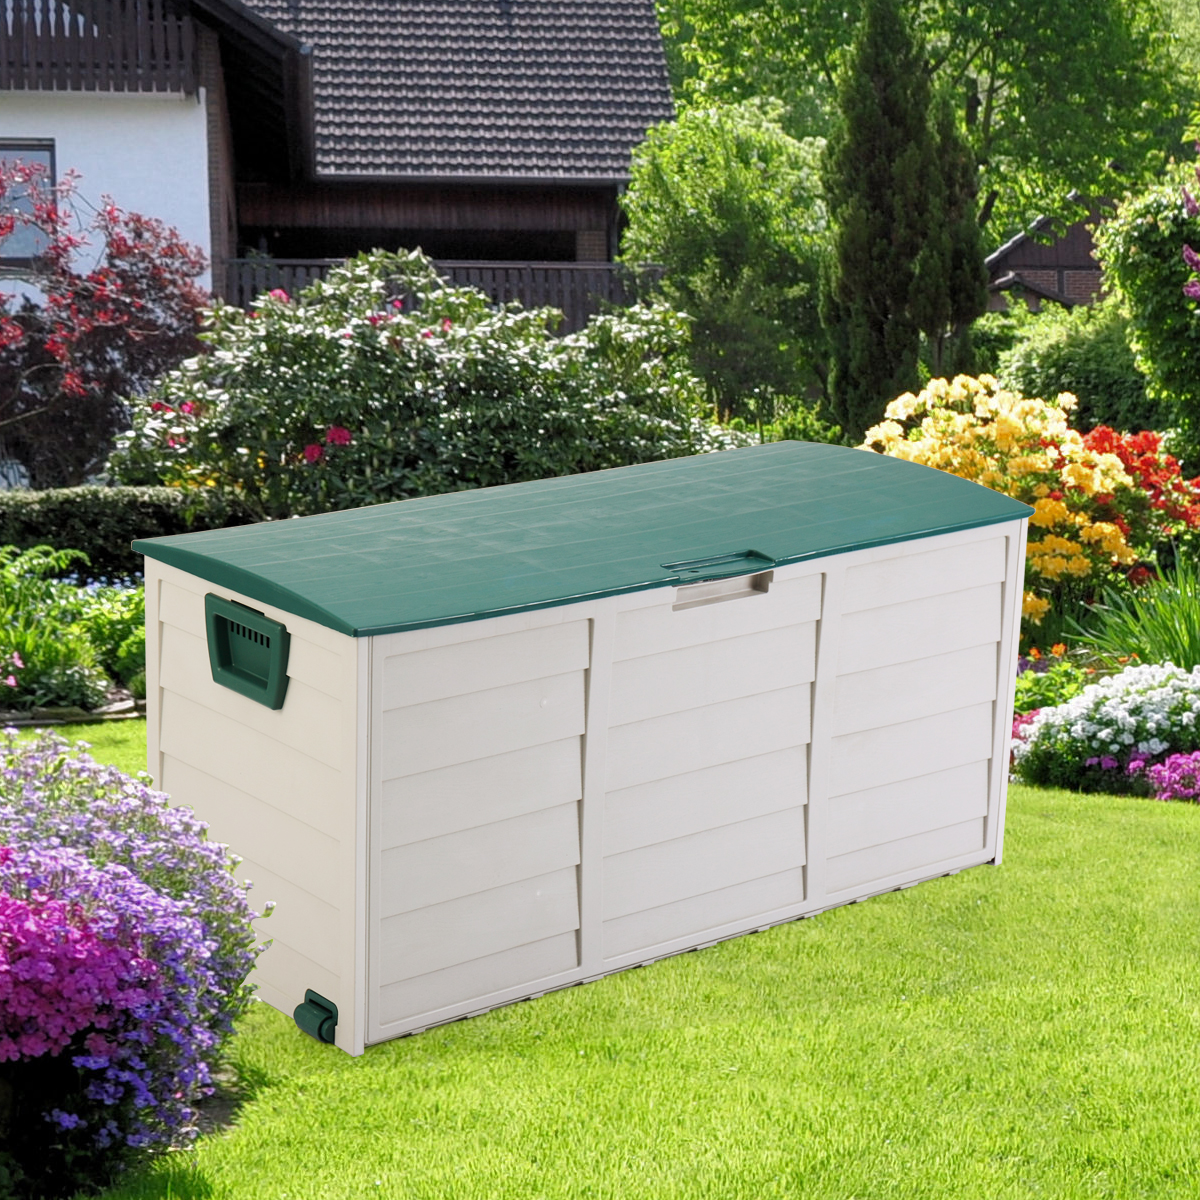 Product Image Deck Storage Box Outdoor Patio Garage Shed Backyard Garden  Tool Box Container